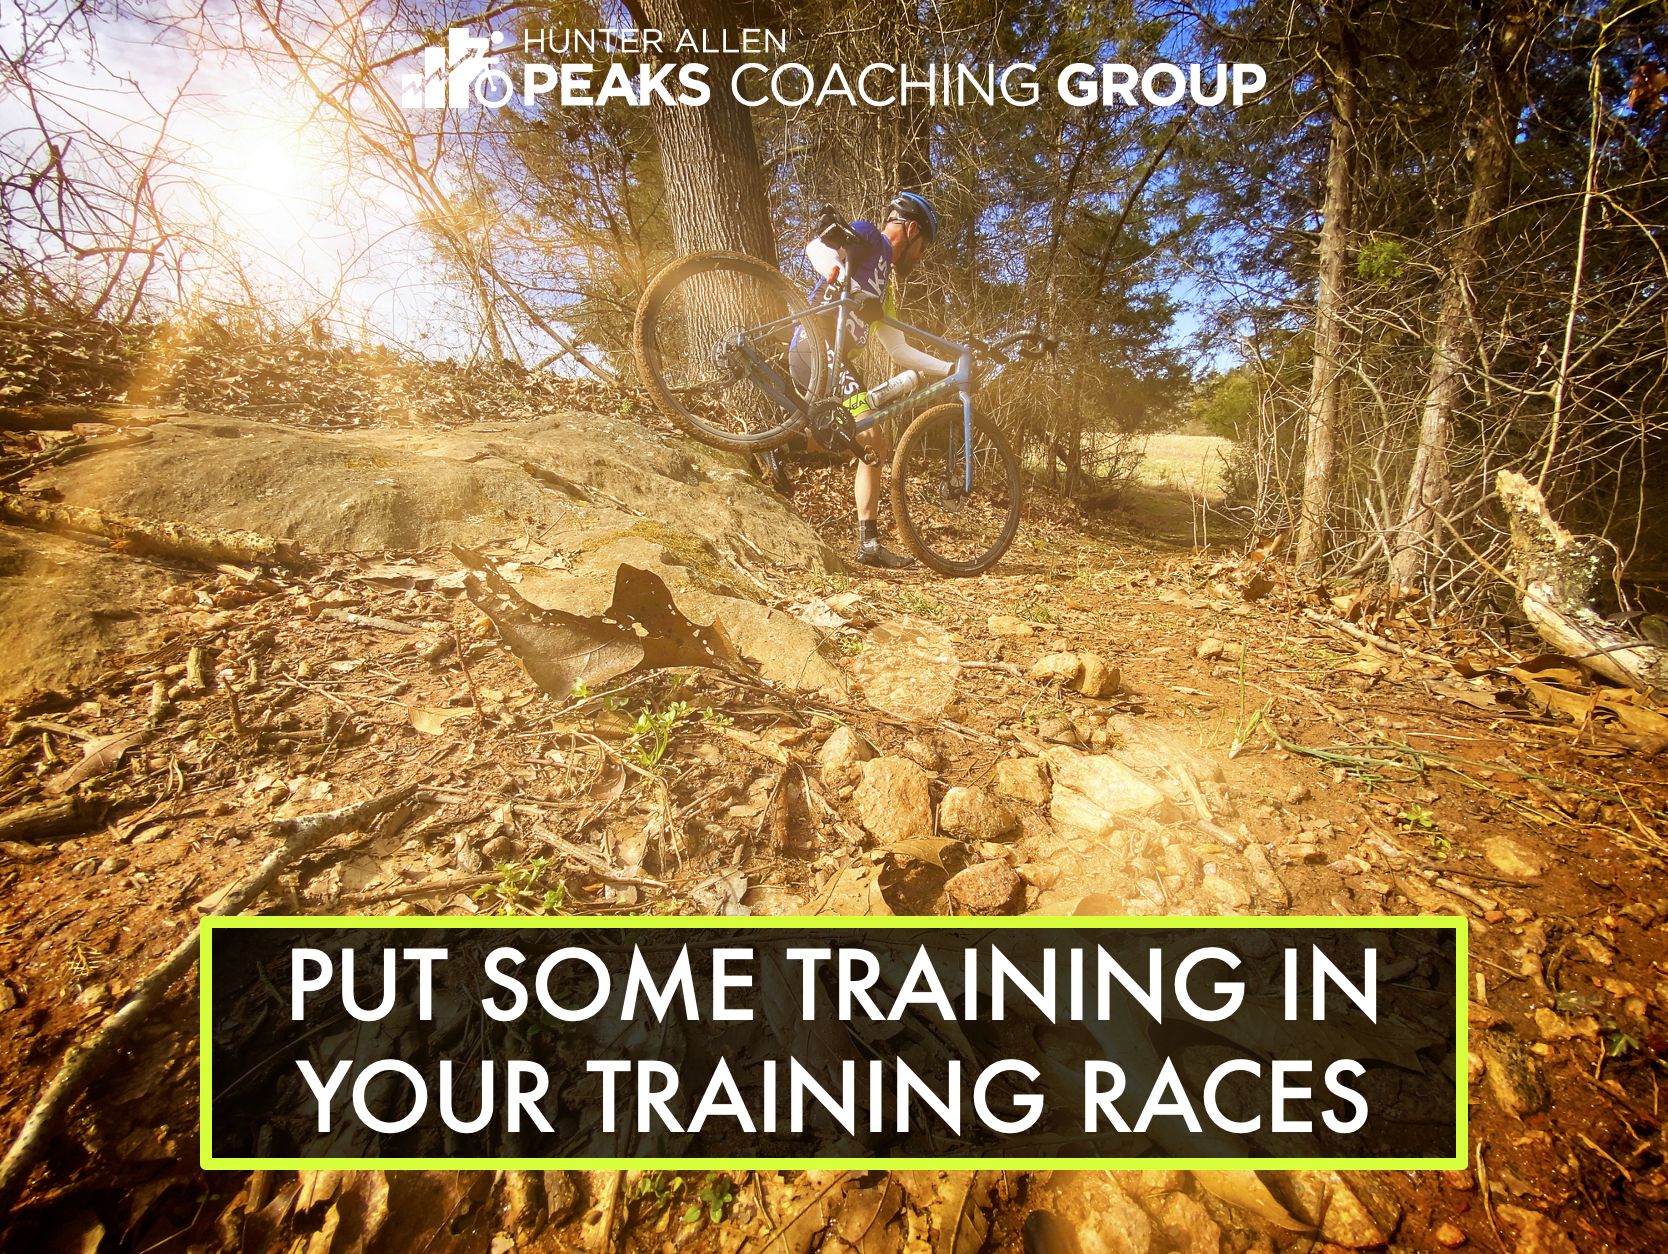 put some training in your training races